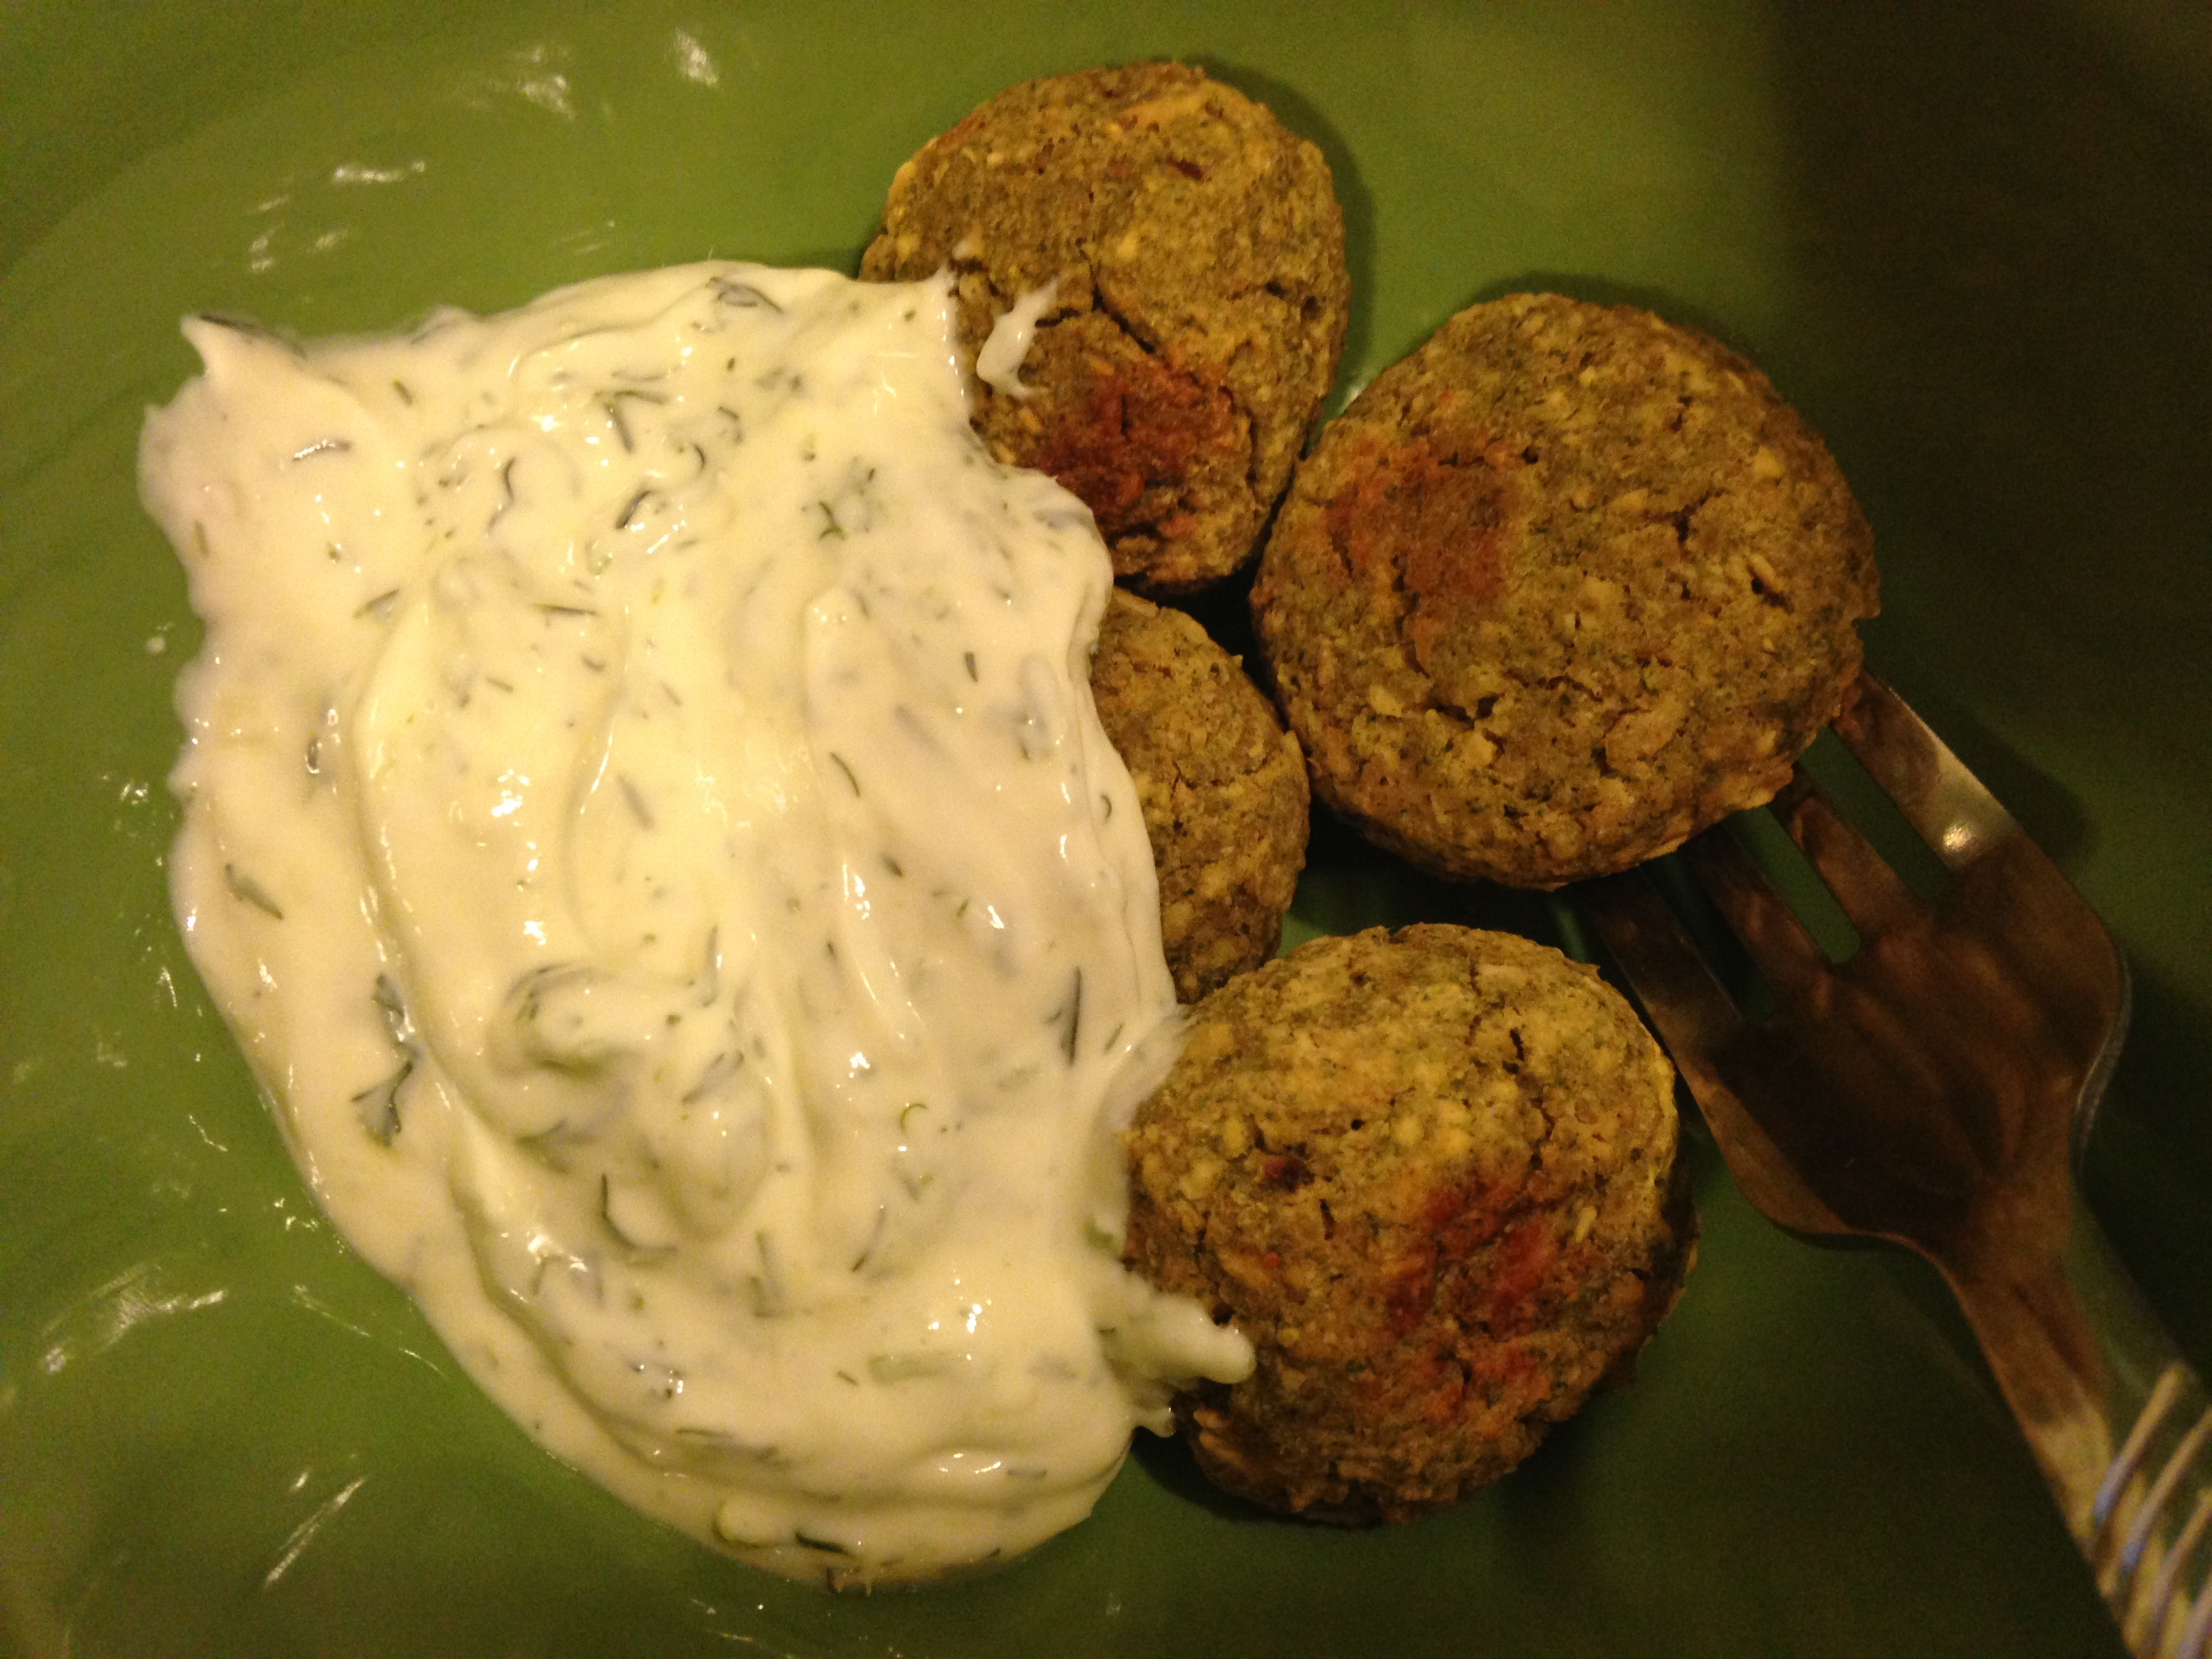 Falafel Balls and Dill Dip, 16 grams protein per 4 oz puree lunch meal | Protein Artist